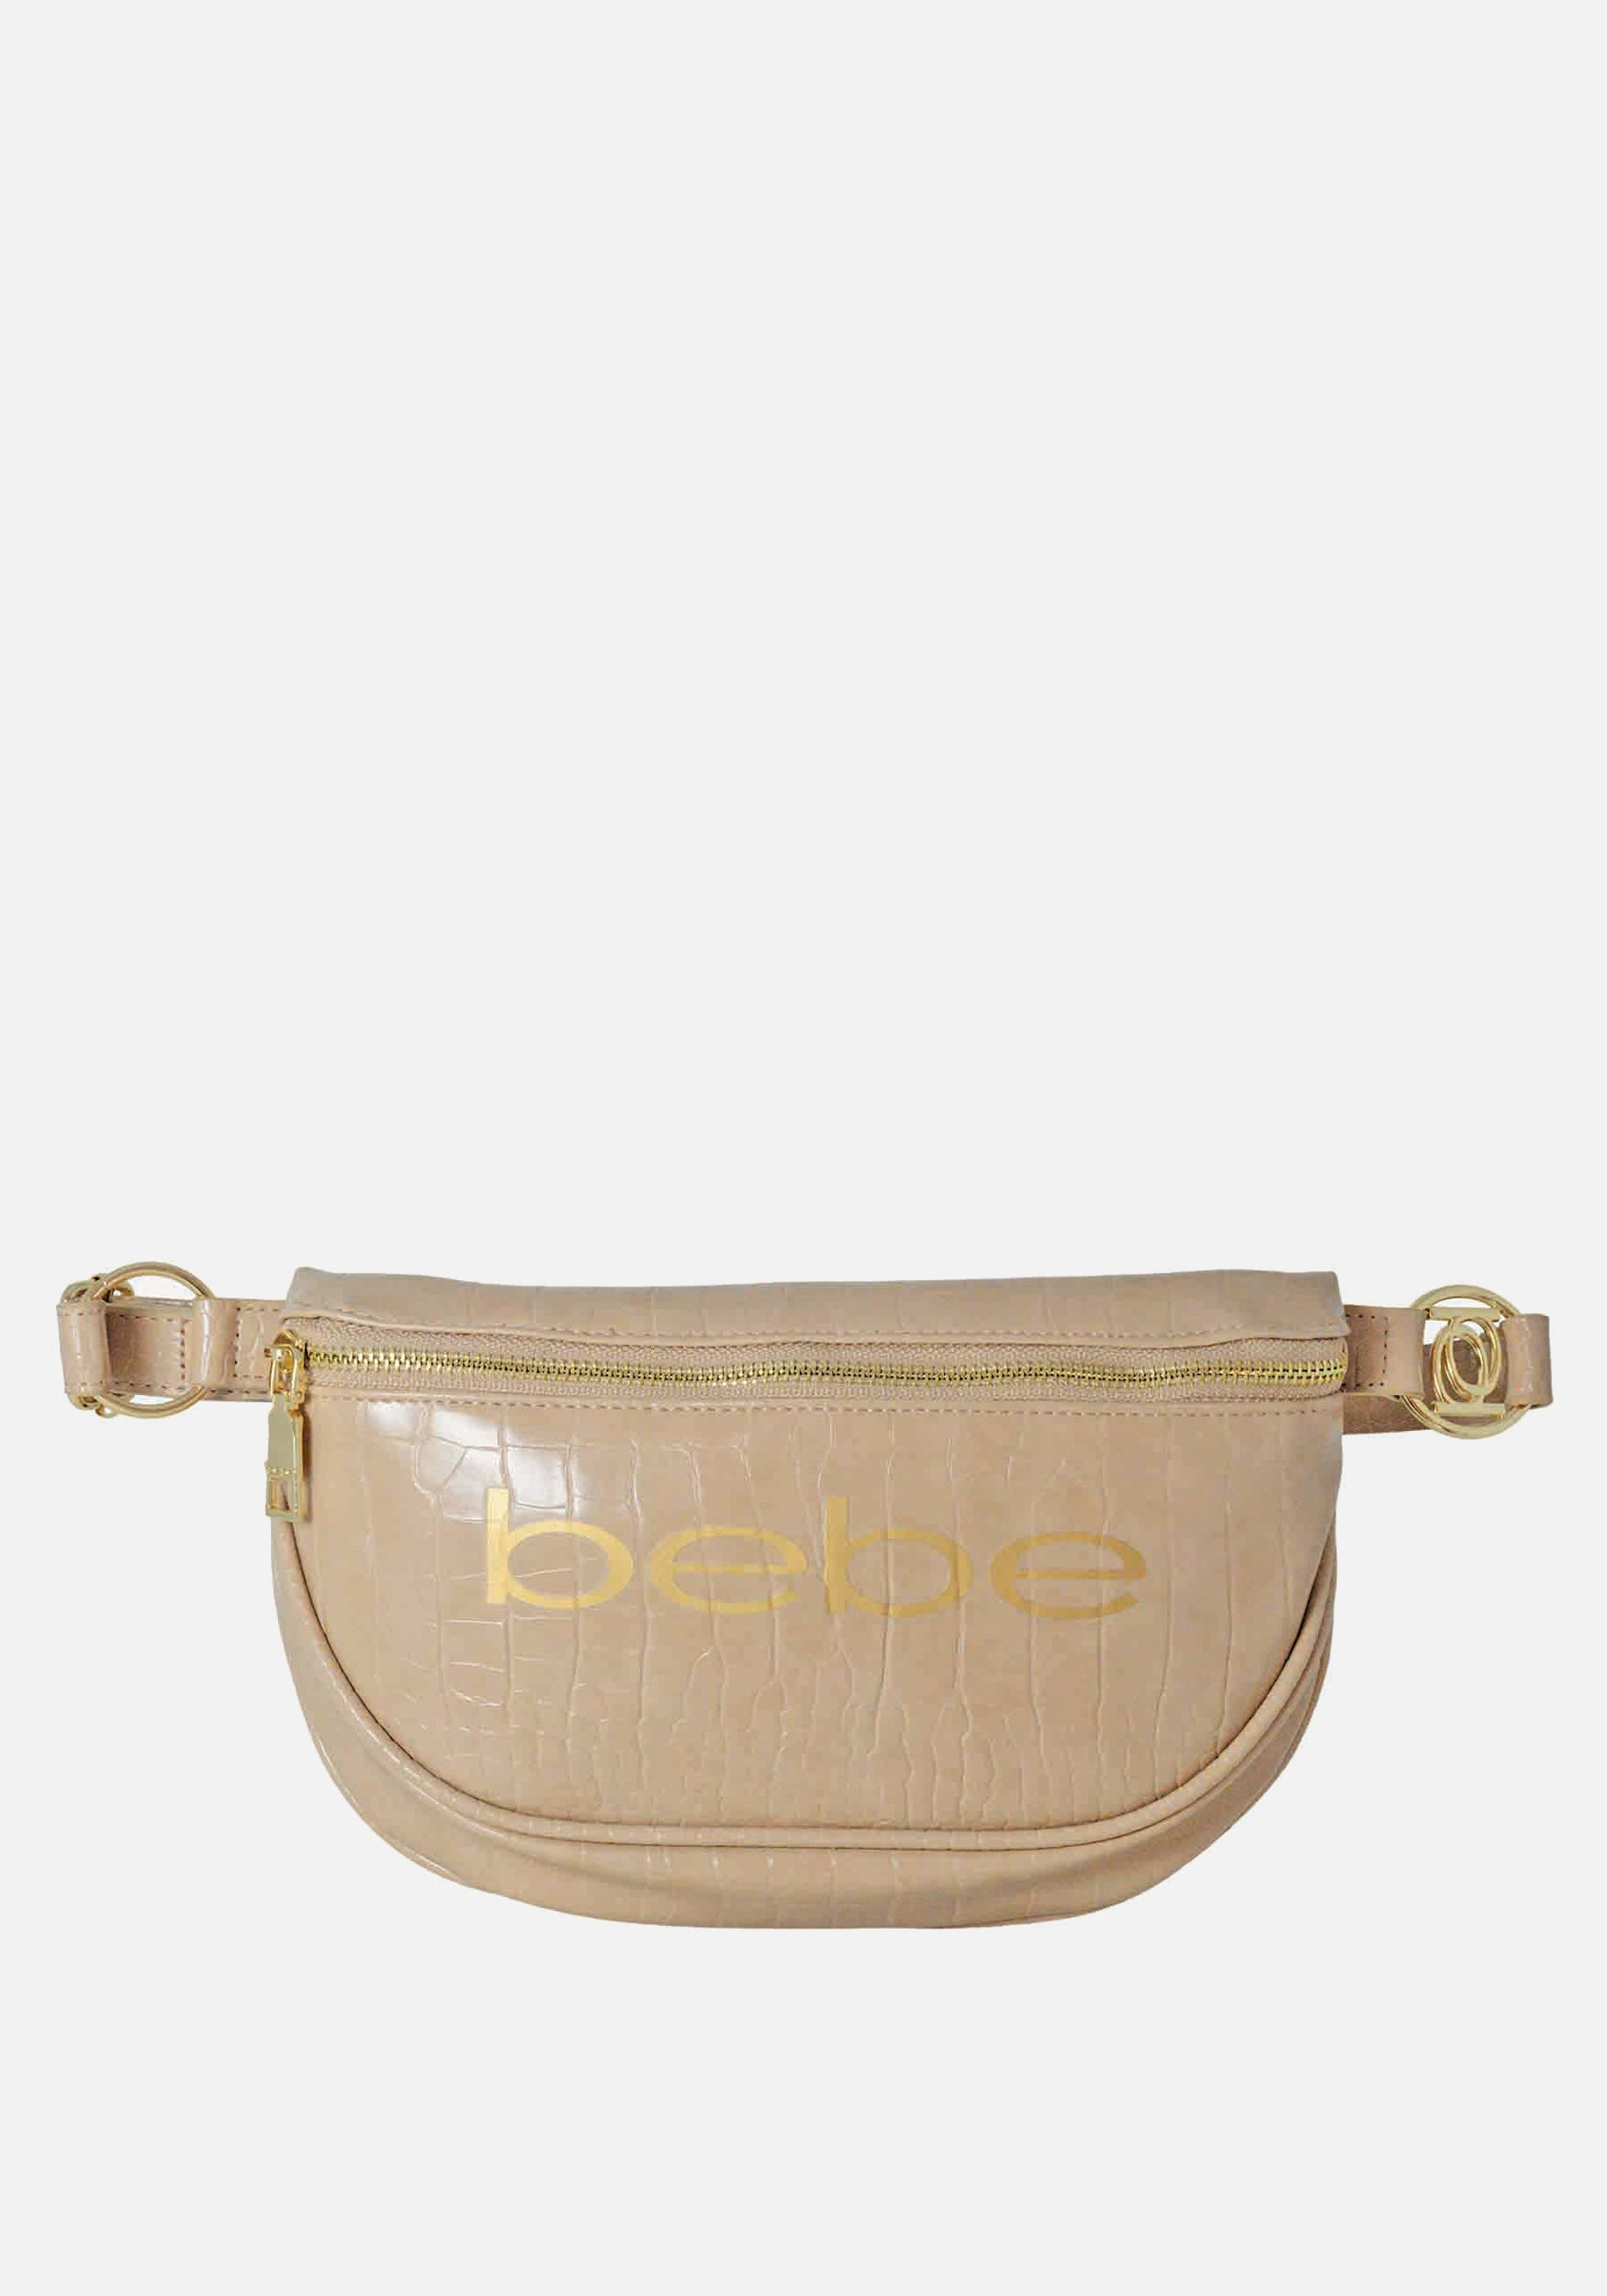 Bebe coupon: Bebe Women's Josephine Croco Convertible Sling in Taupe Polyester